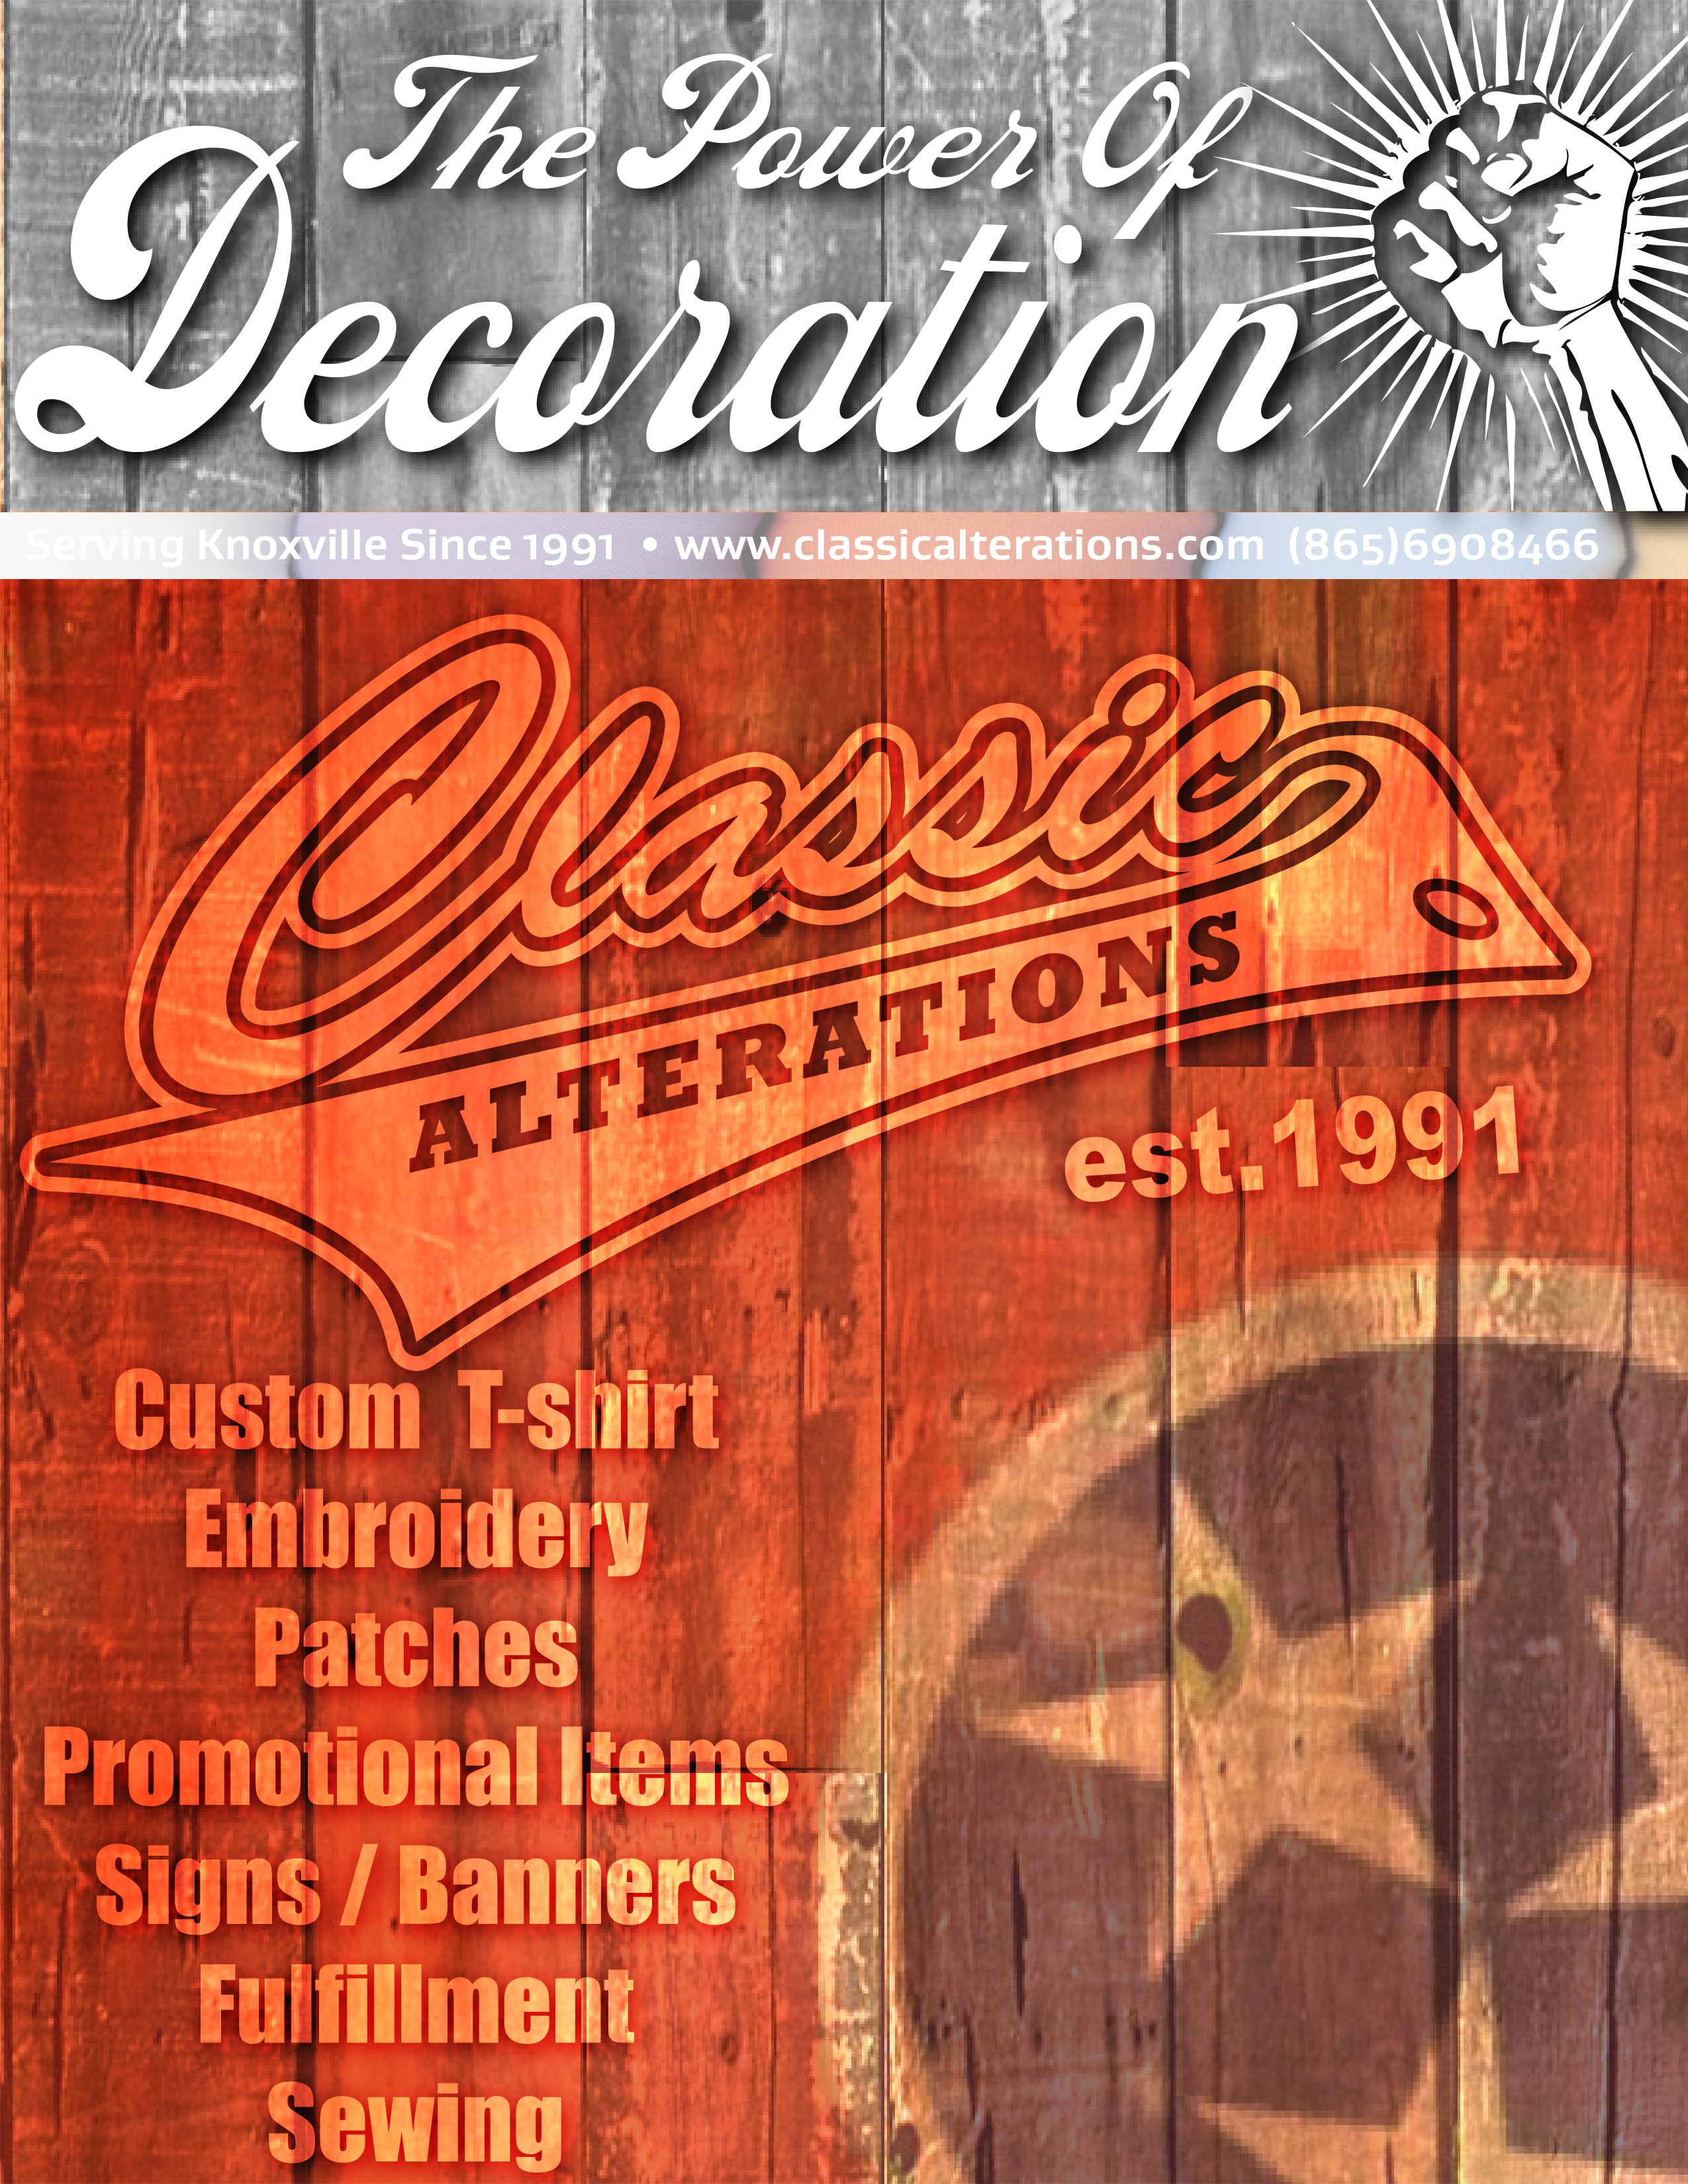 Classic Alterations And Monograms 9309 Kingston Pike Knoxville Tn